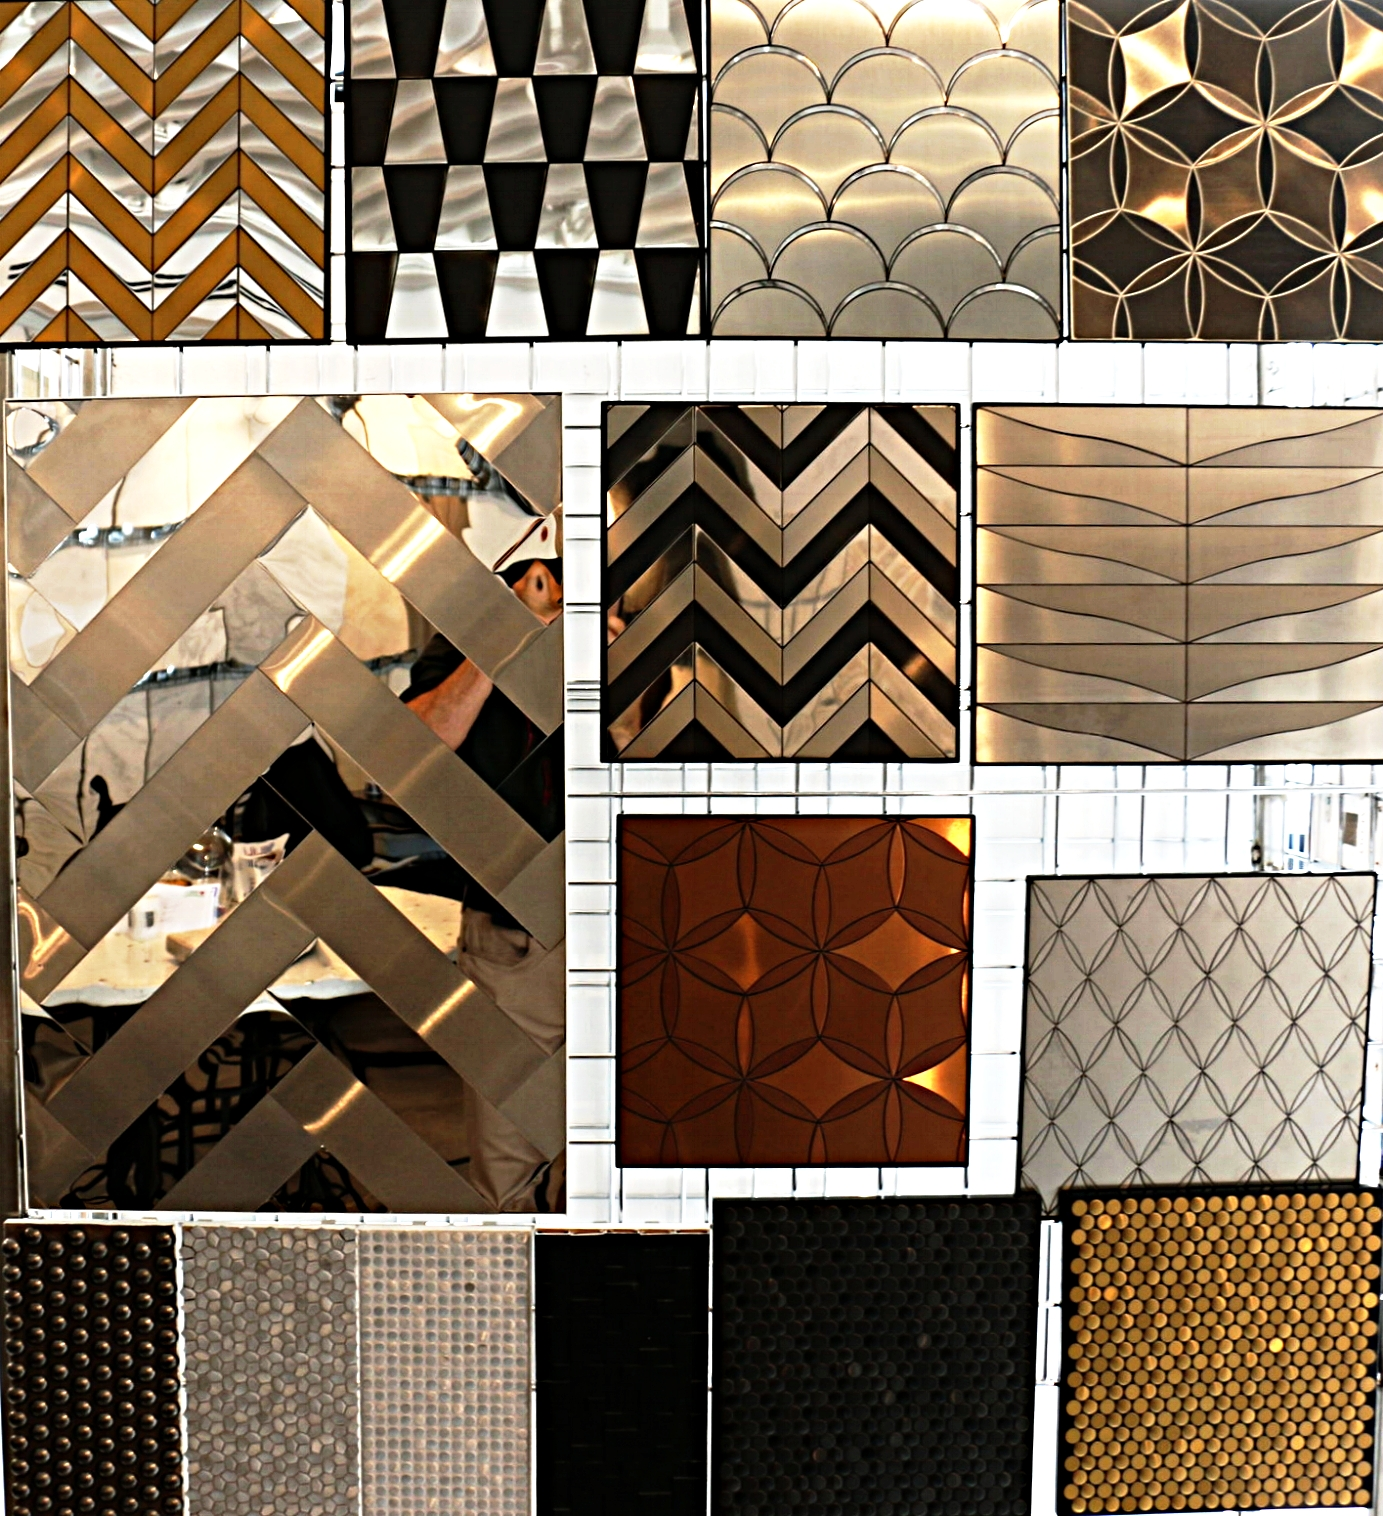 Metal tiles available in shiny and brushed finshes. Numerous patterns to choose from.